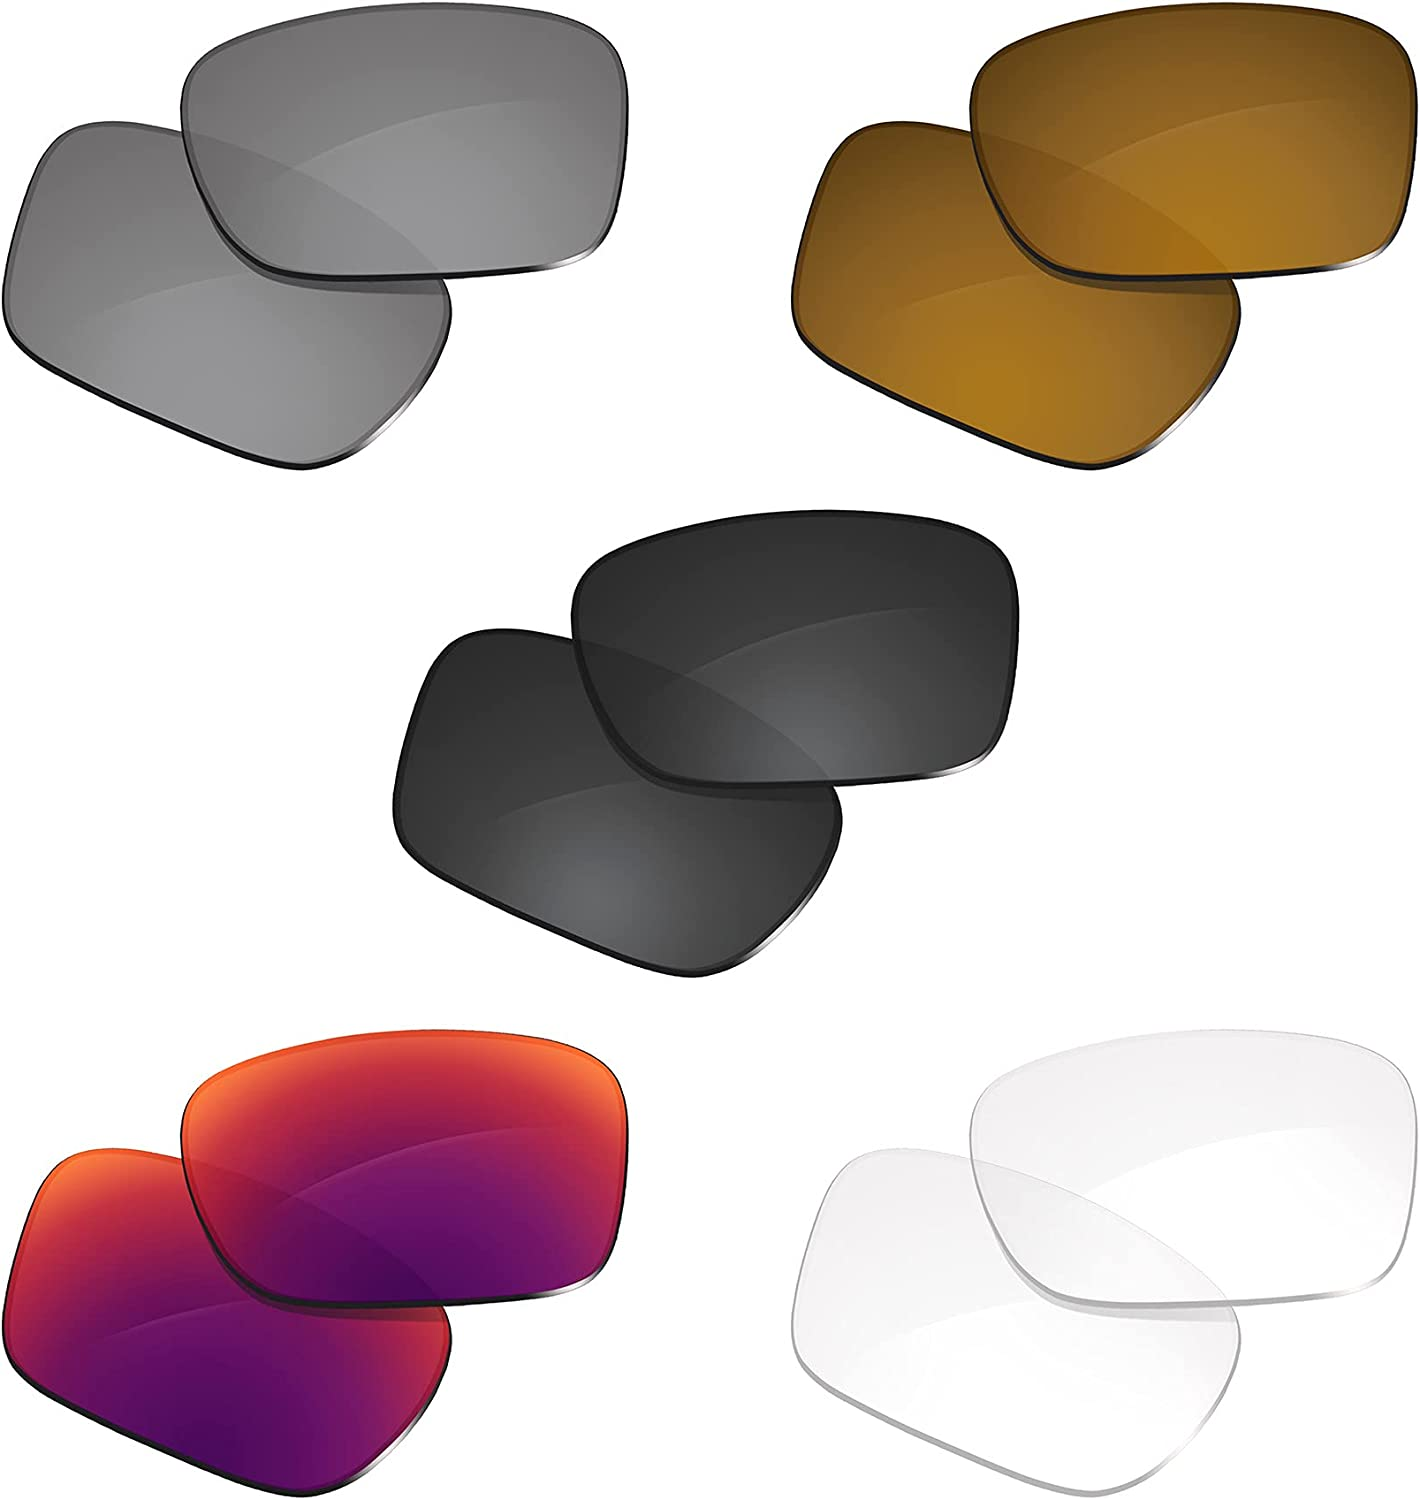 Glintbay 5 Pairs Replacement Lenses for Oakley Holbrook P OO9102 Shipping included Baltimore Mall